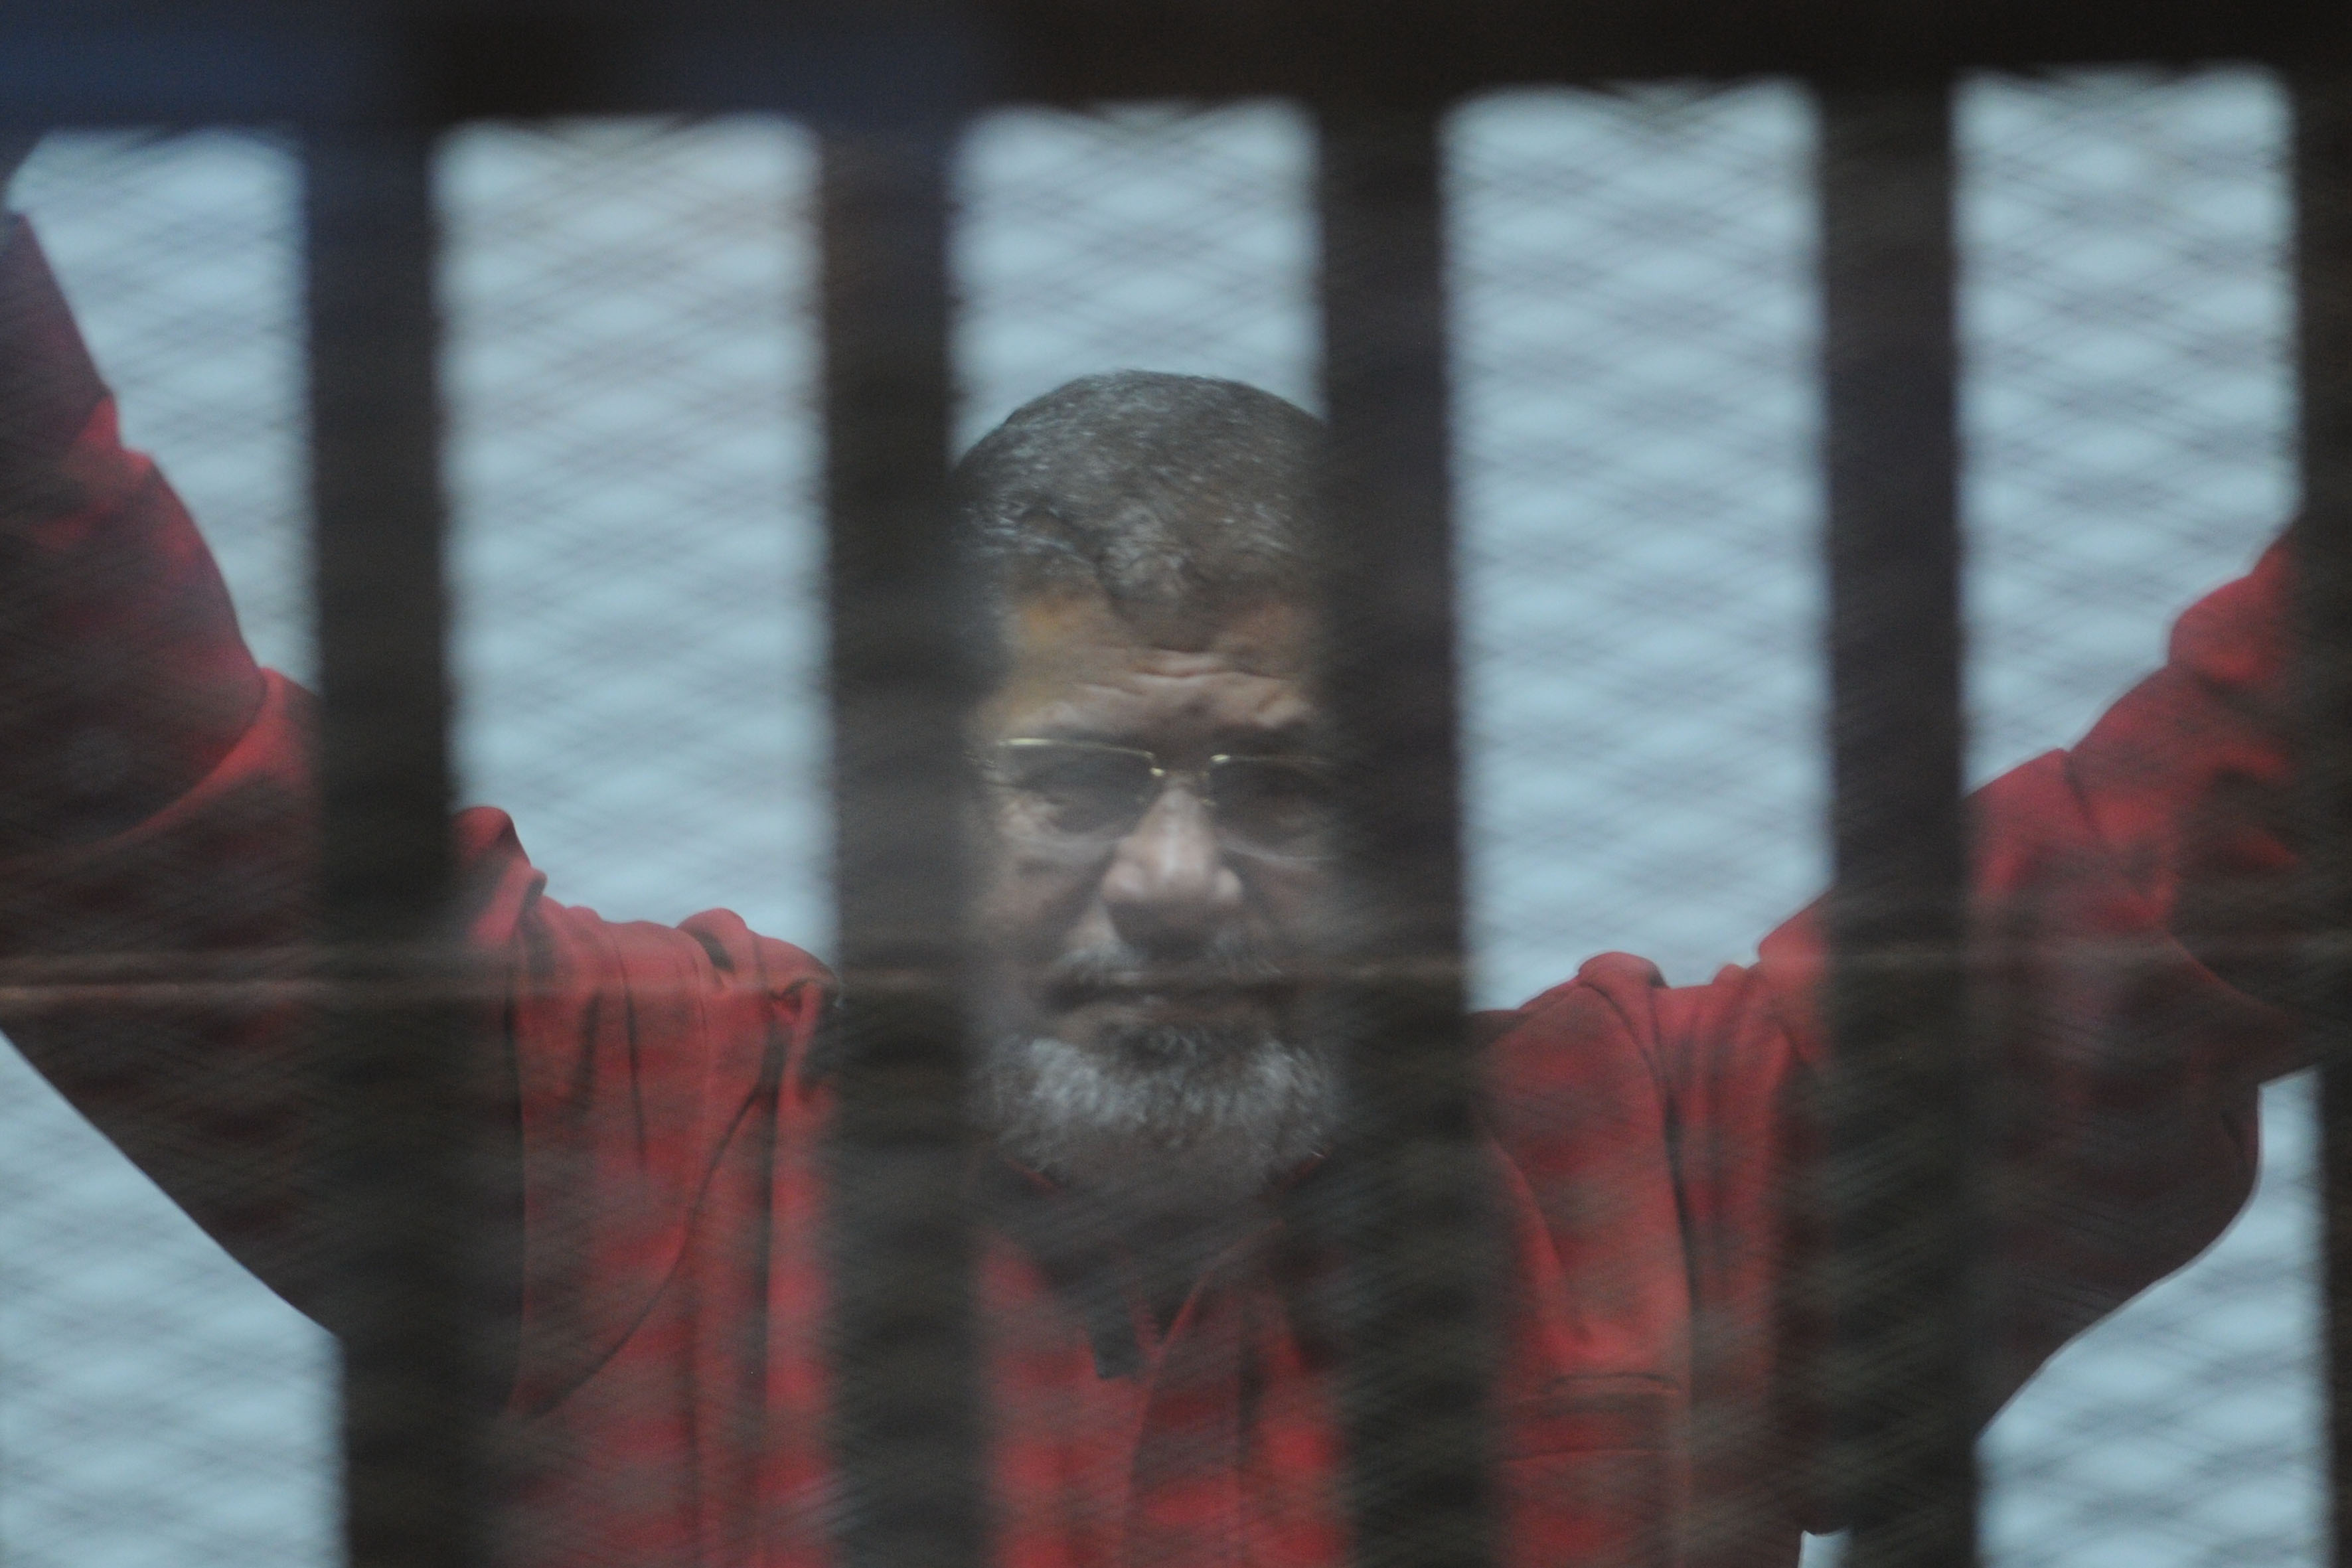 The Cairo Criminal Court submitted the grounds on which former president Mohamed Morsi and five others were handed death sentences. (DNE Photo)